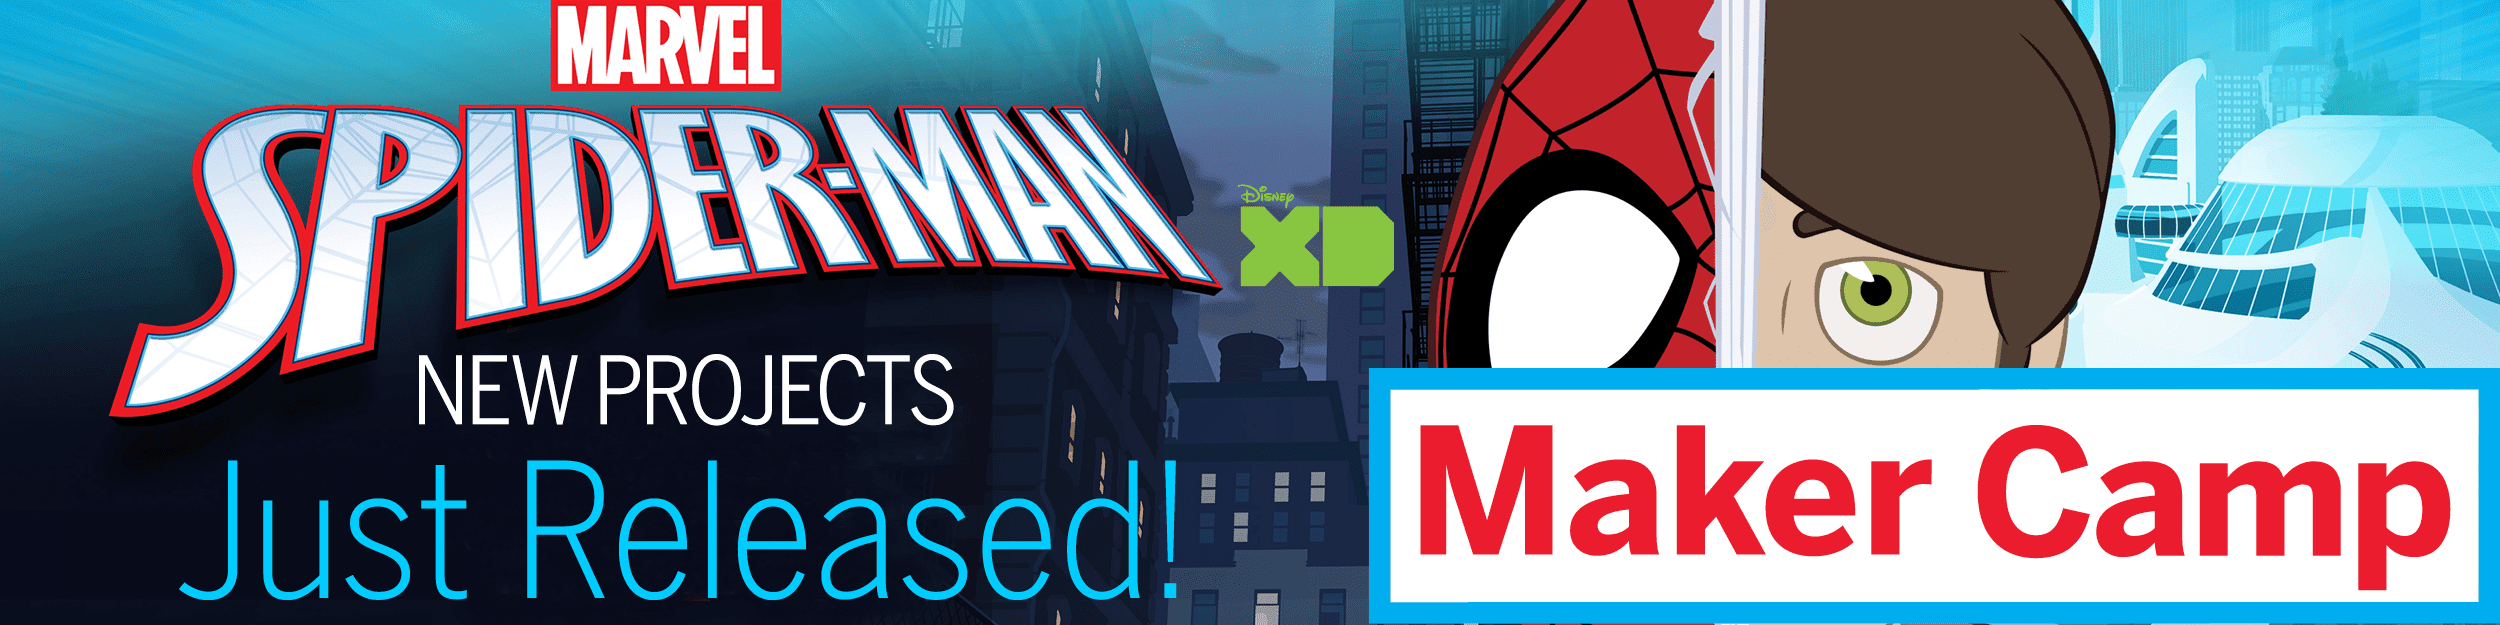 Marvel Spider-man New Maker Camp Projects